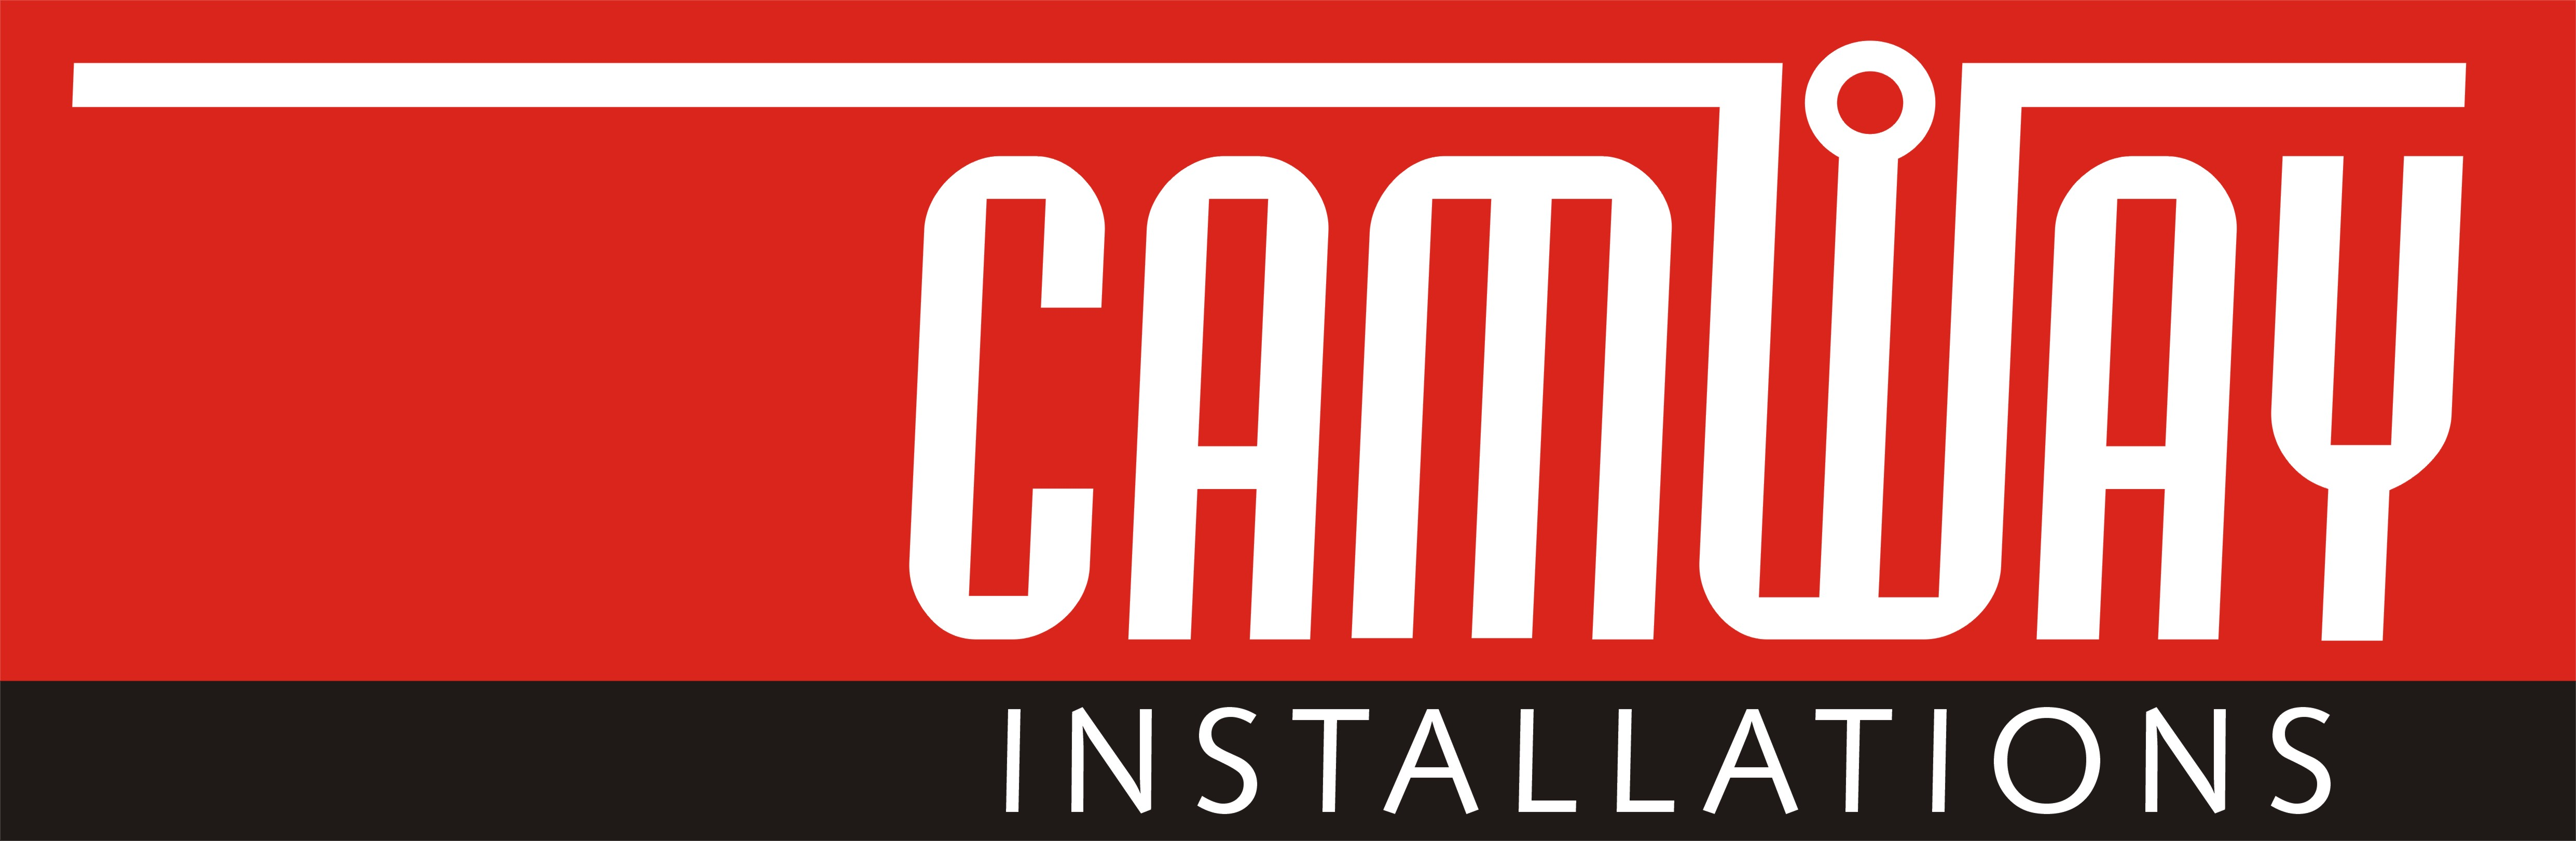 Camway Installations